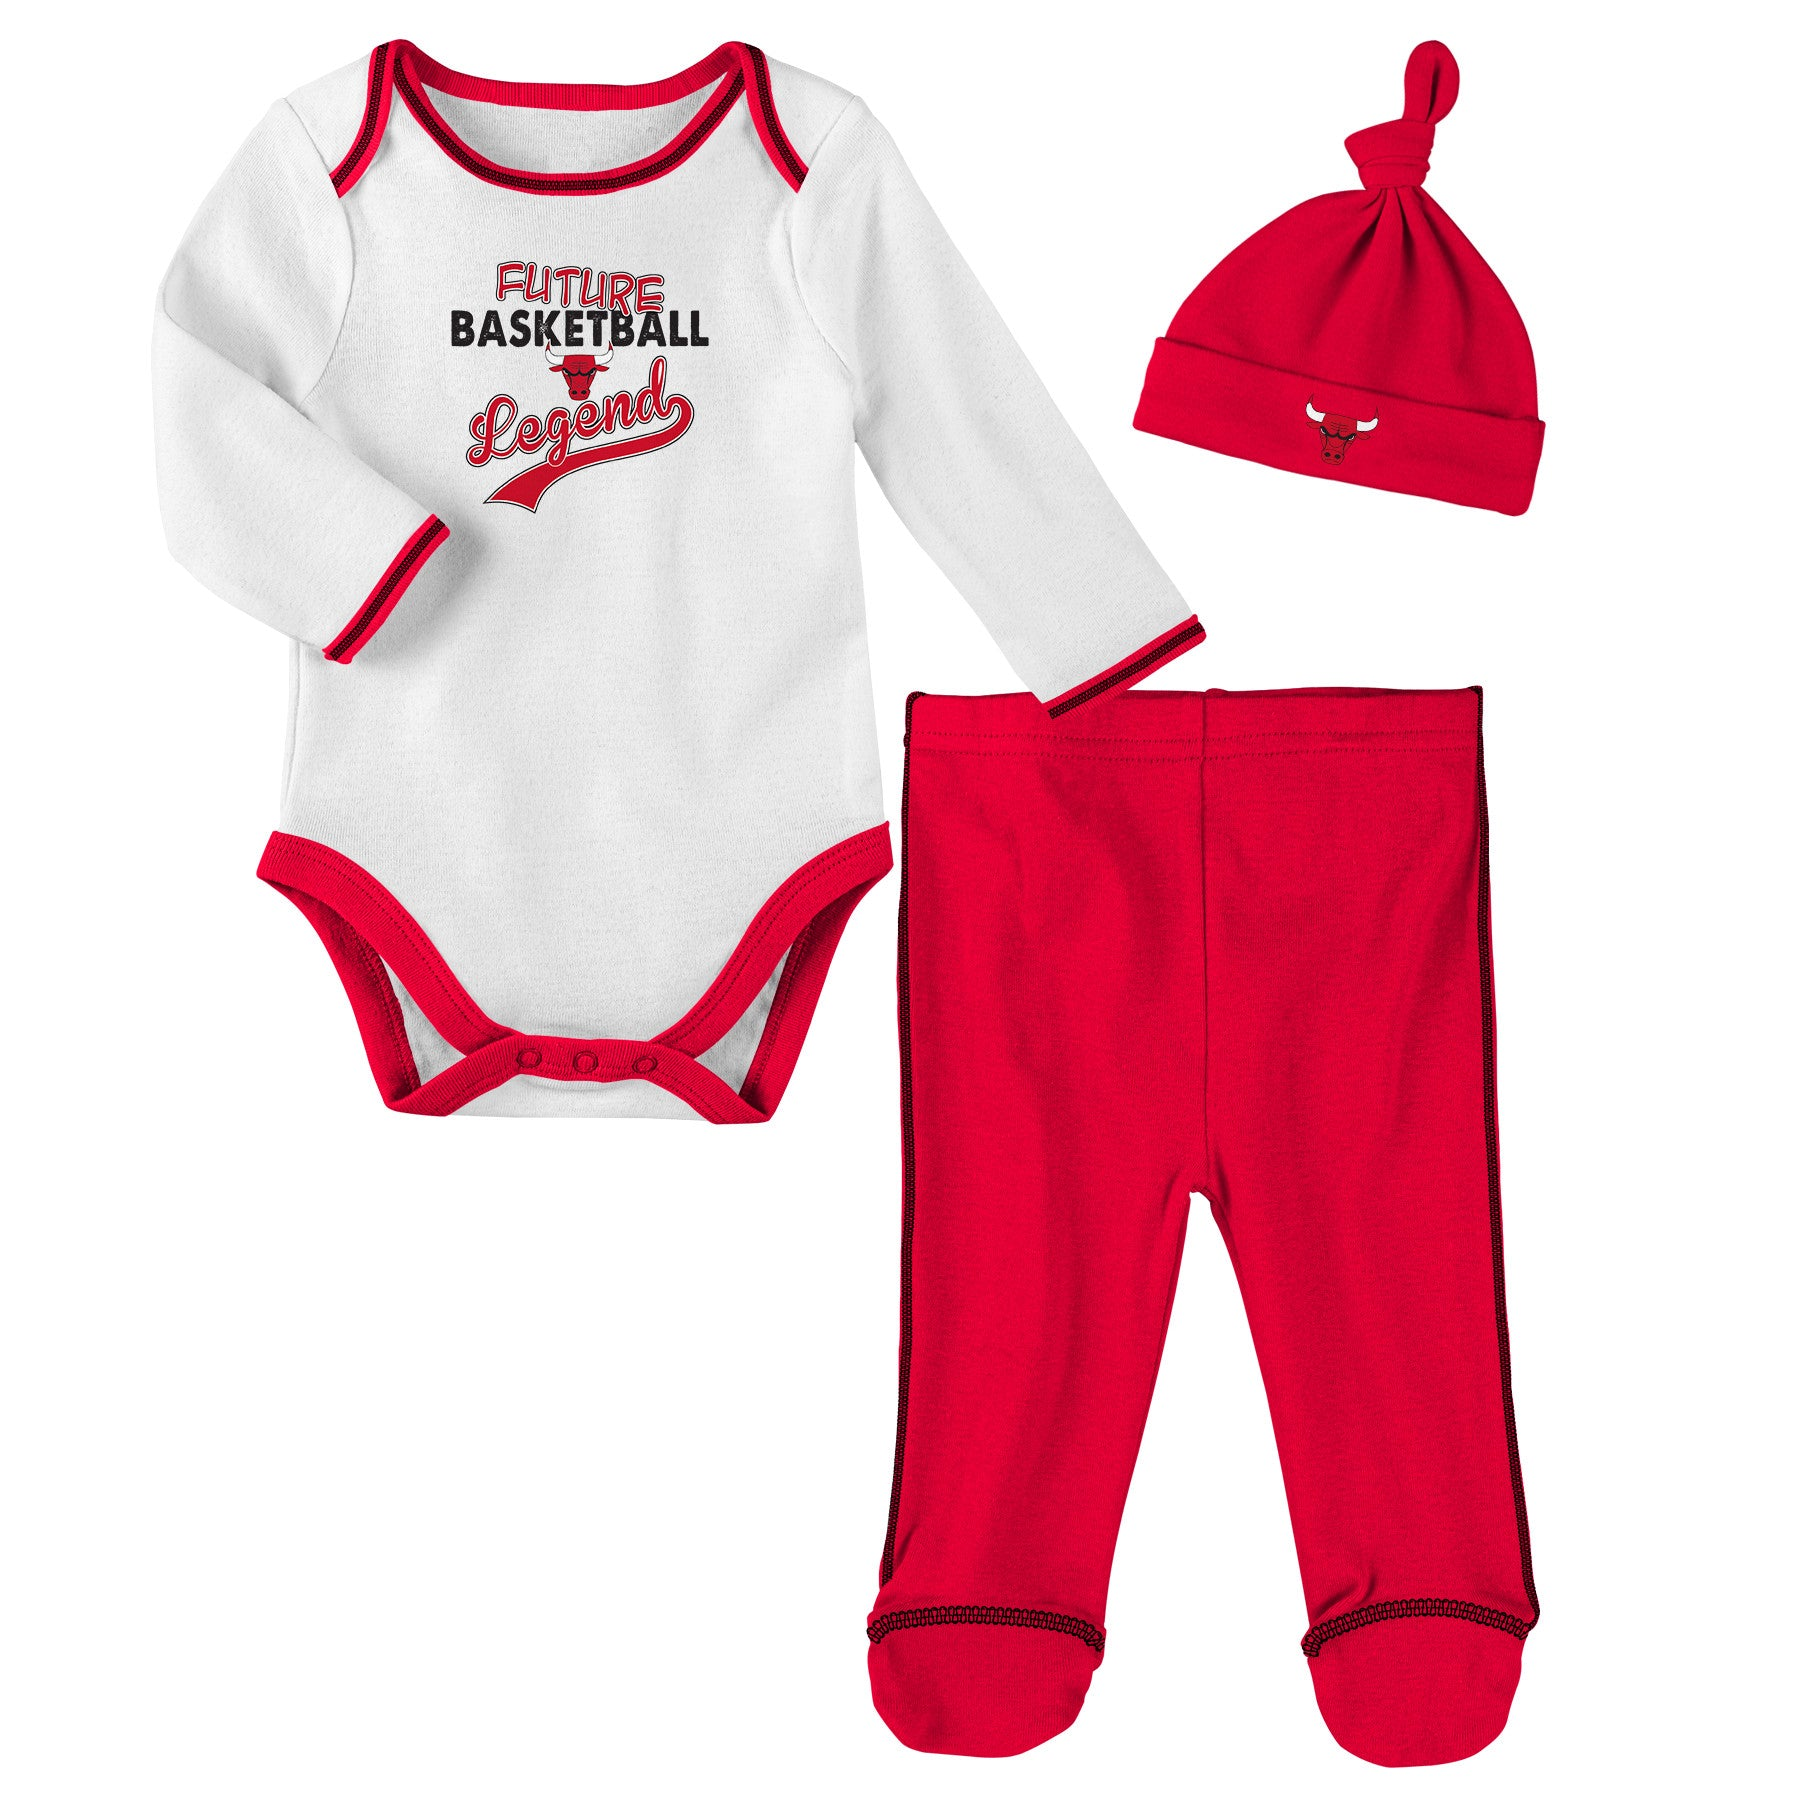 Chicago Bulls Future Basketball Legend 3 Piece Outfit – babyfans 0c178d1b8